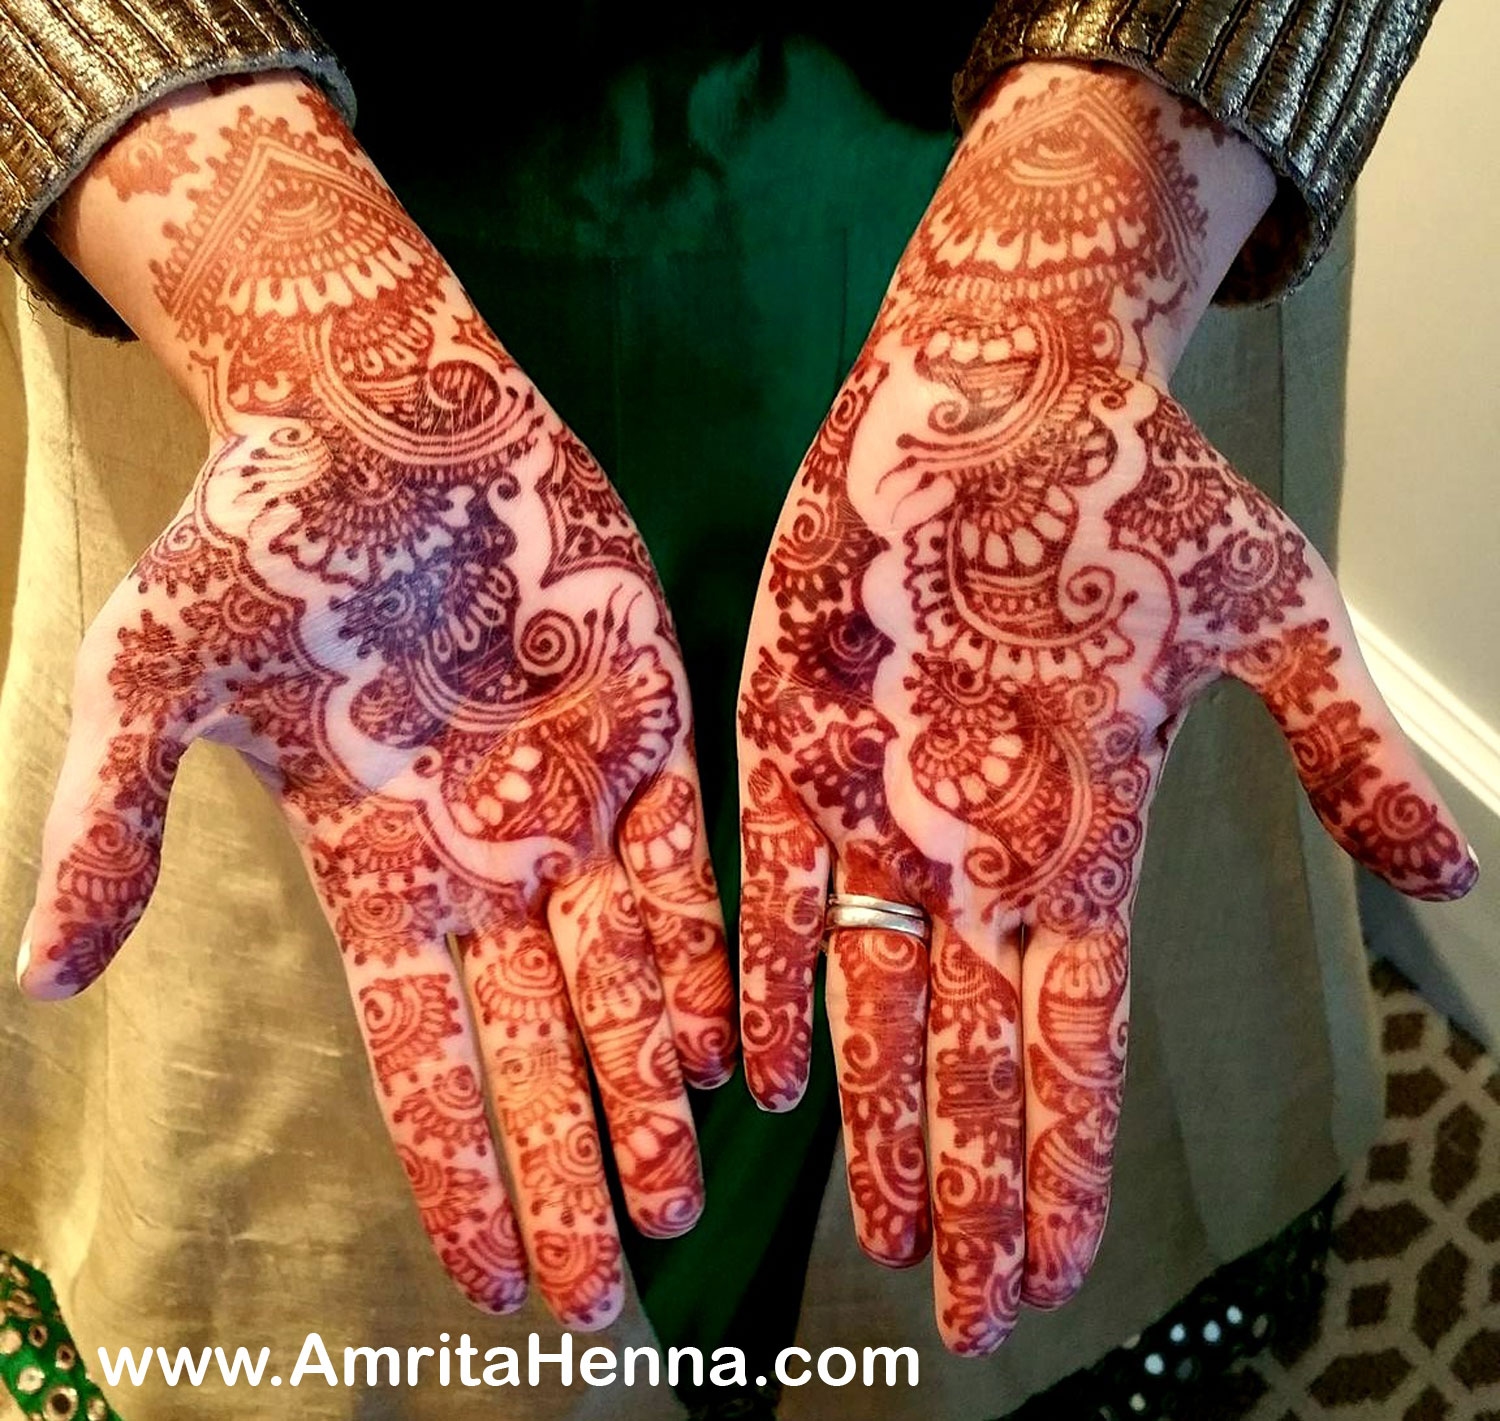 Top 10 Engagement Henna Designs - Top 10 Mehndi Designs for your Engagement Ceremony - 10 Best Sagai Mehendi Henna Designs for Brides - Top 10 Henna Designs for an Engagement Party for Women - Top 10 Engagement Henna Designs you should try this Wedding Season - Top 10 Mehendi Designs for your sisters Engagement